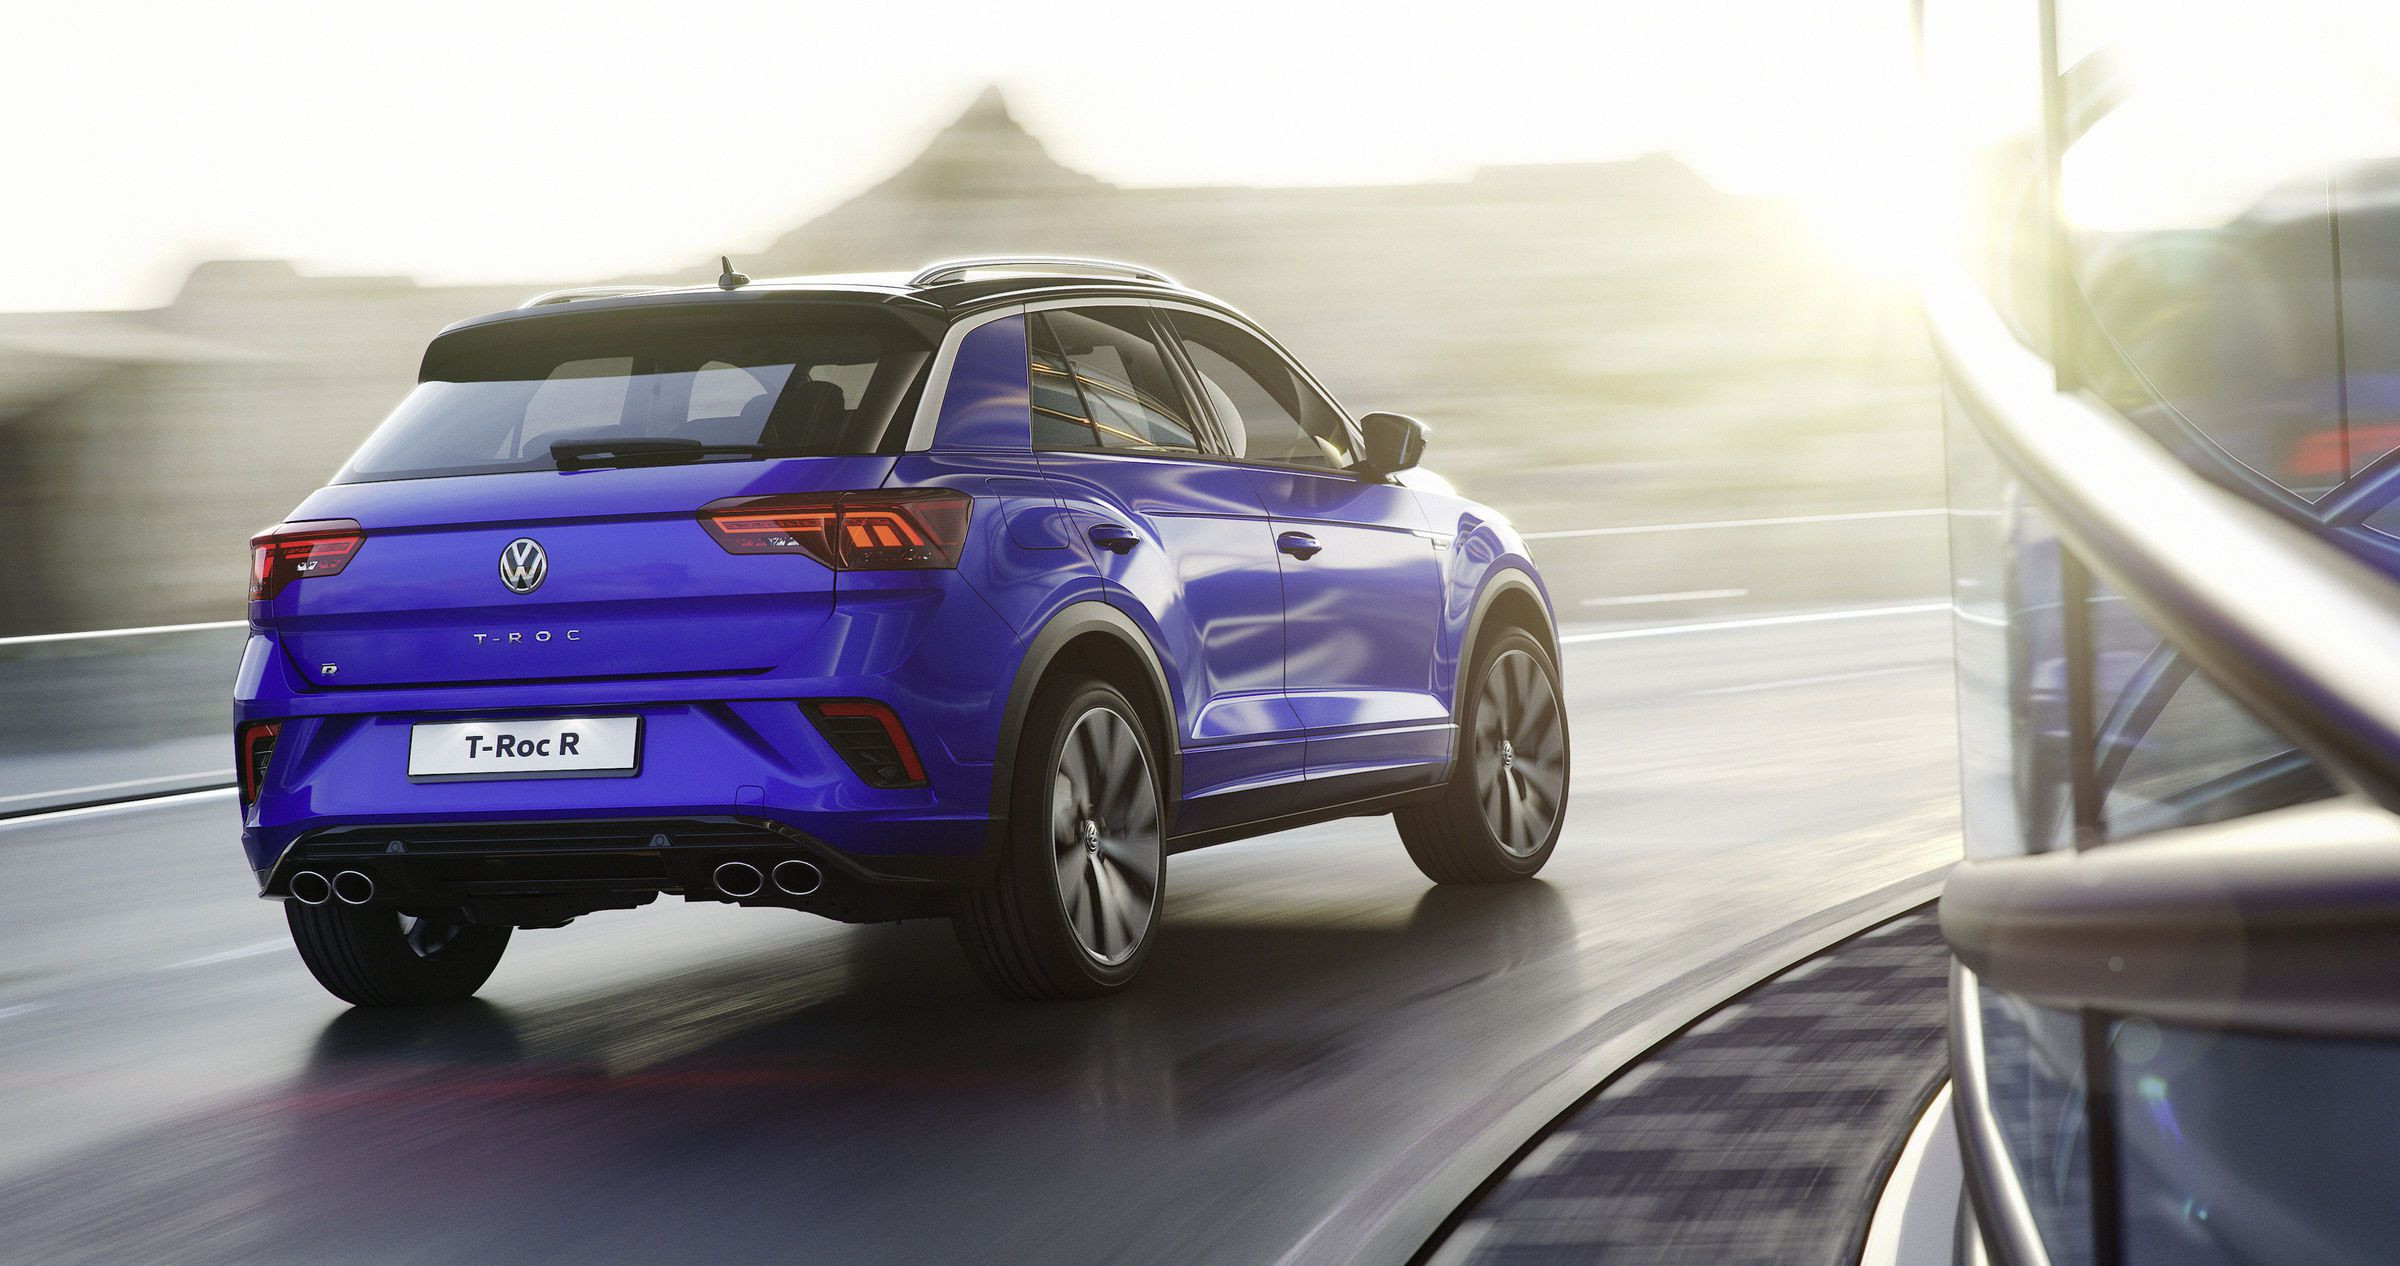 Rear view of a Volkswagen T-Roc R